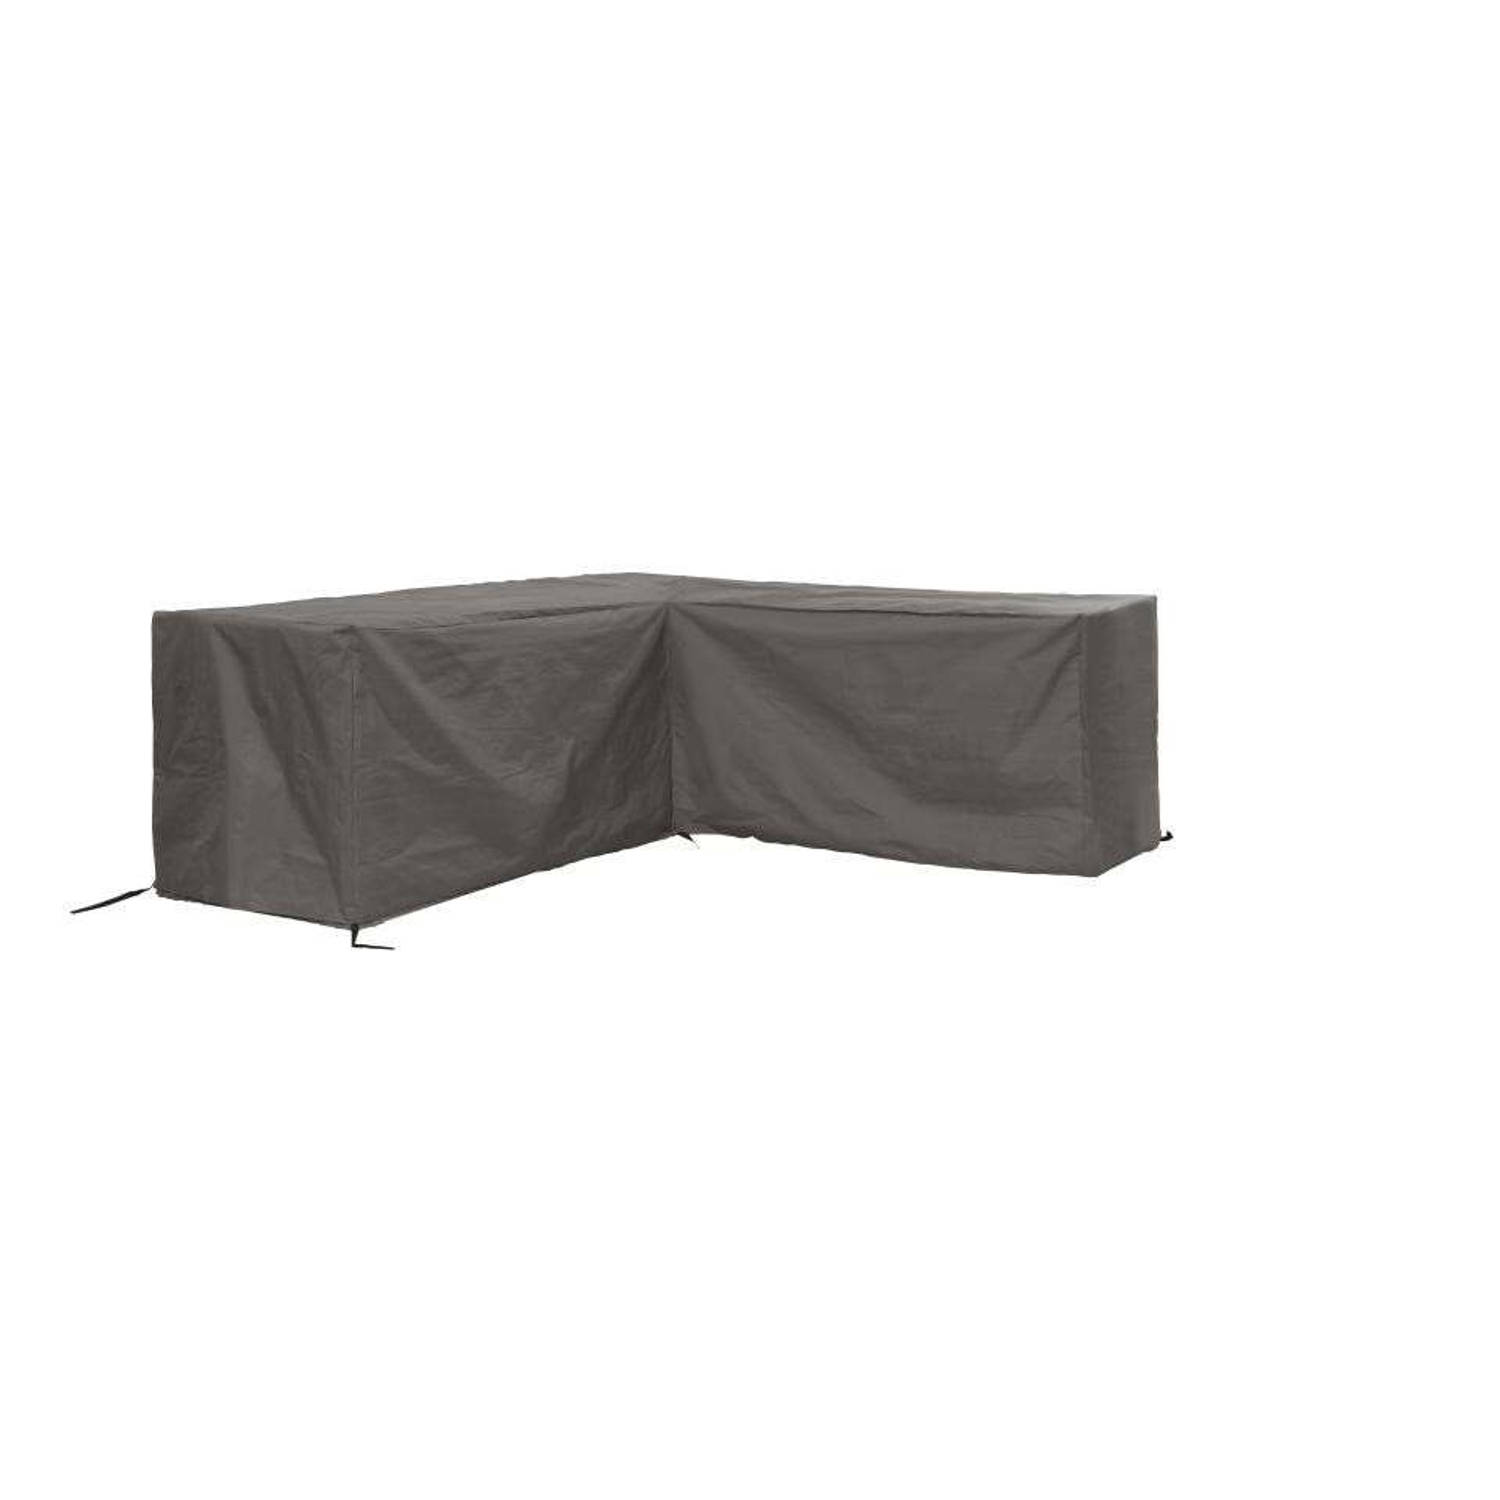 Outdoor Covers Premium loungesethoes - 215 cm